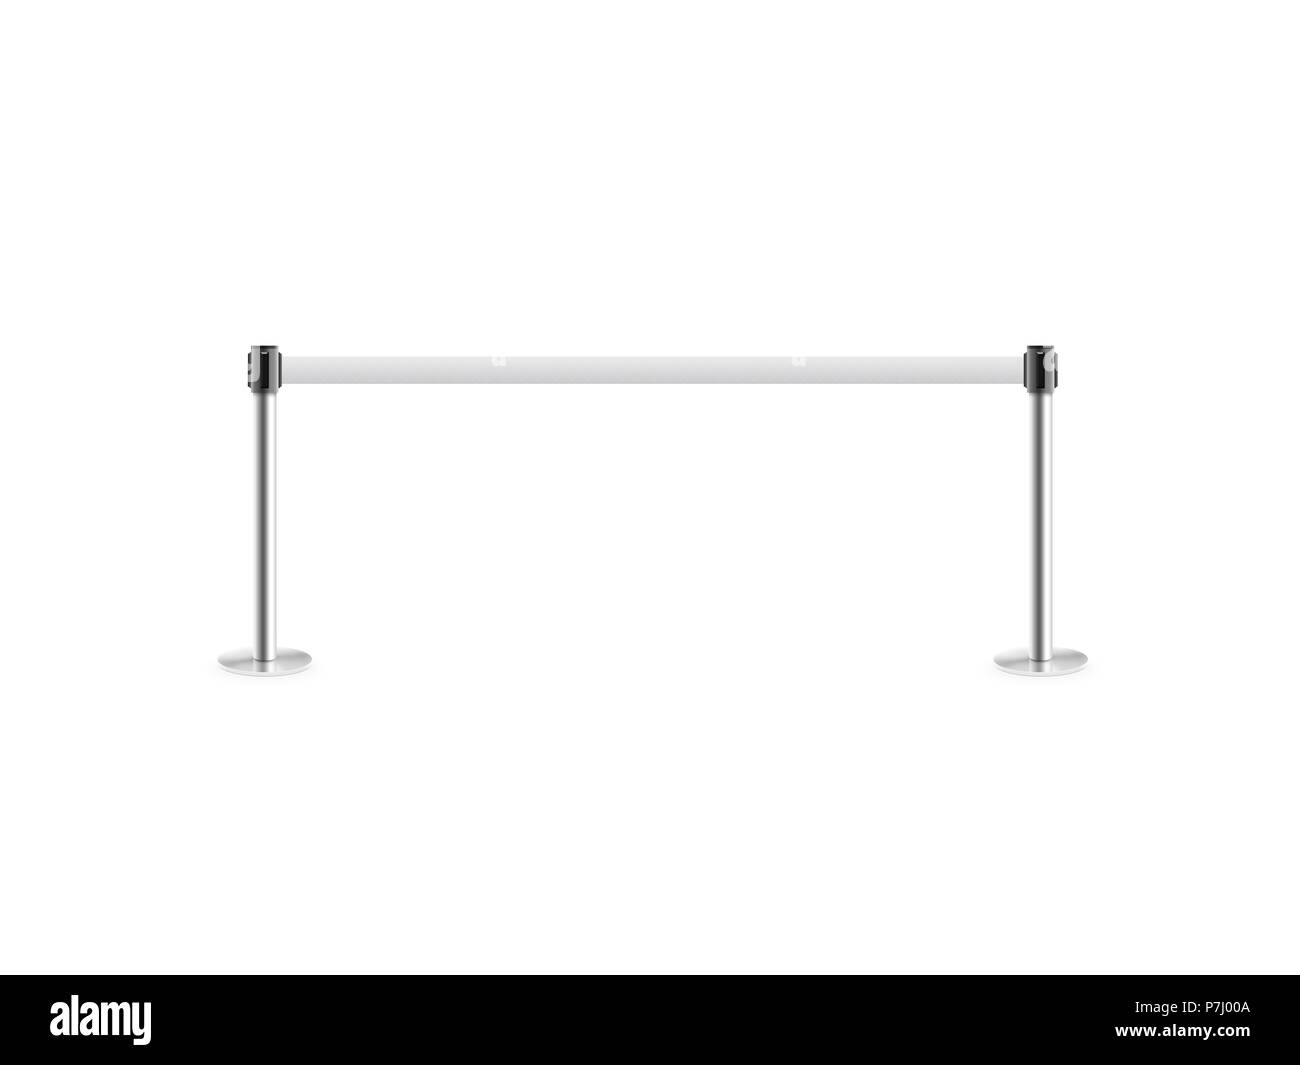 Rope Barrier Stock Photos Images Alamy Blank Auto Mobile Wiring Diagrams Schematic Fence Stand Isolated On White Fencing Barricade Metal Chrome Pole Posts